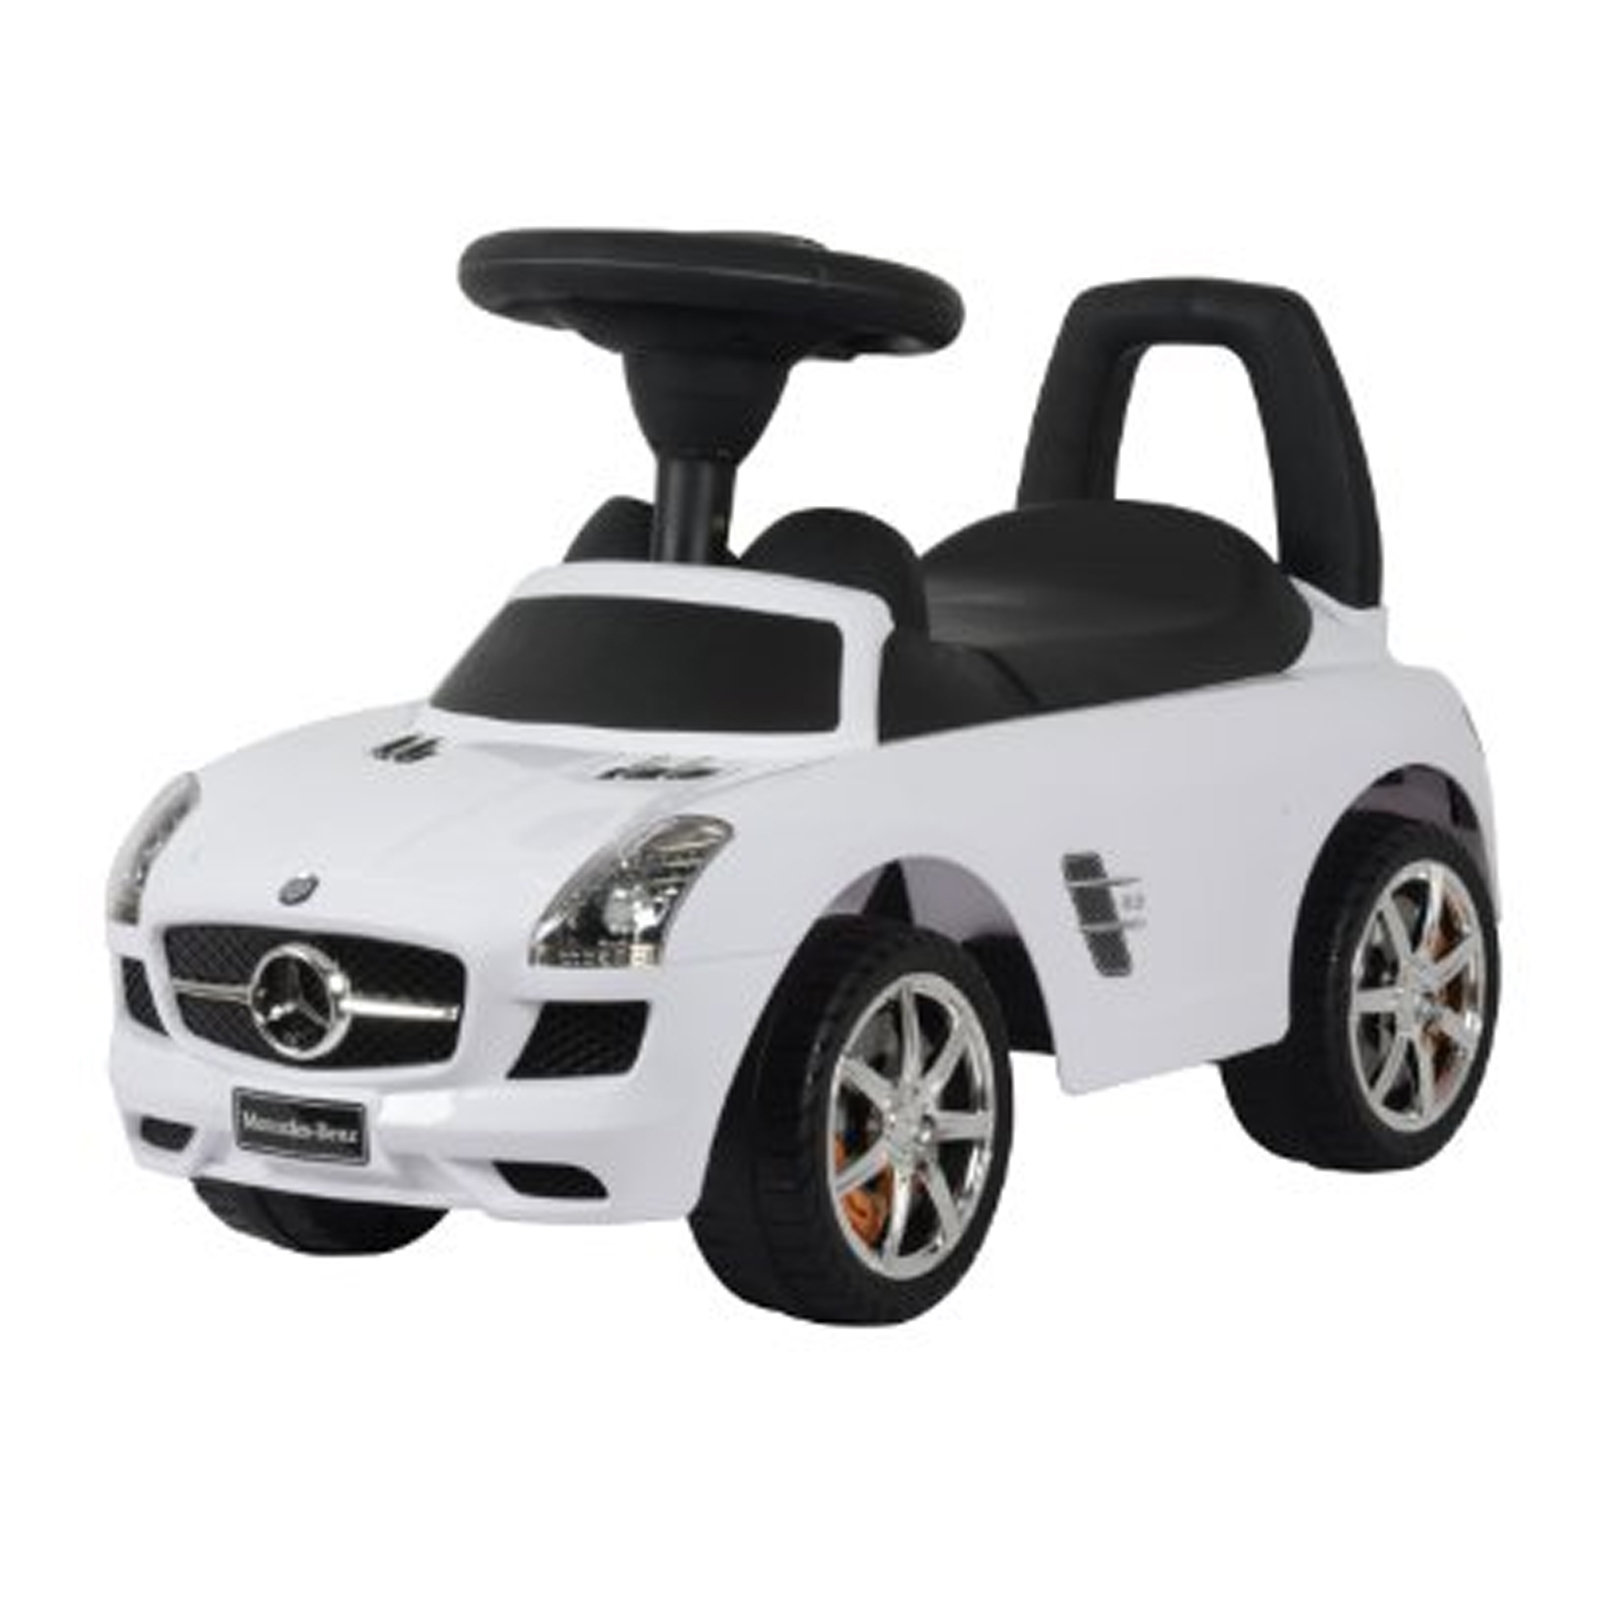 Licensed Mercedes Benz Kids Ride On Push Car in White